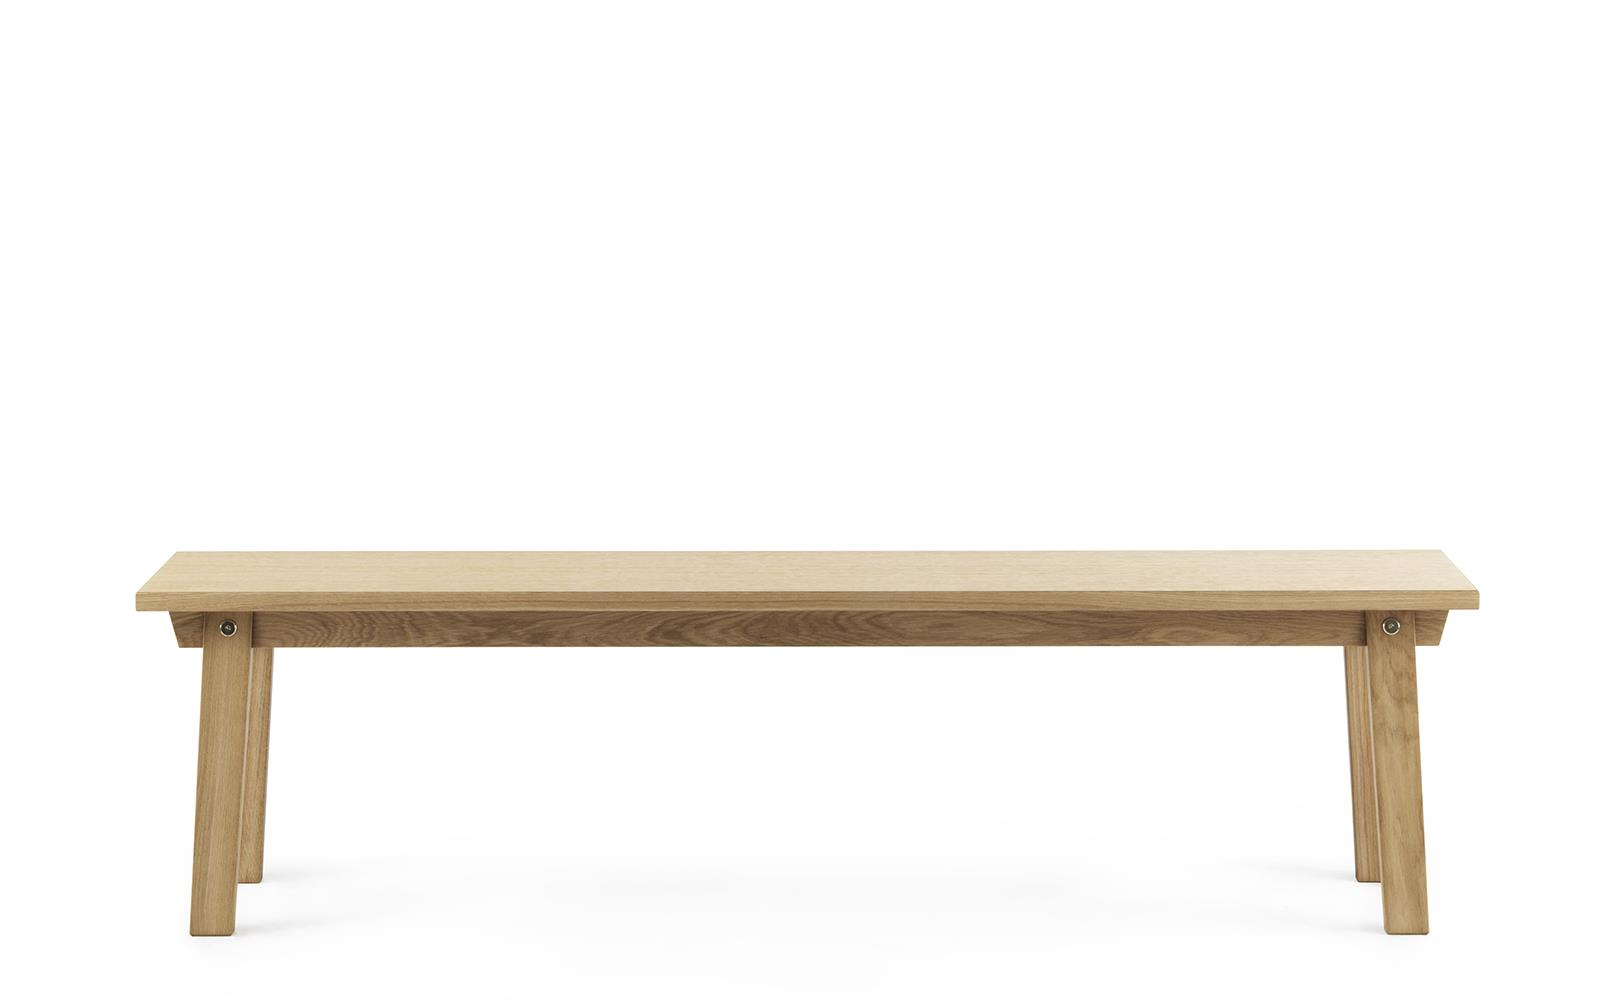 Slice Bench Vol 2 38 x 160 cm2